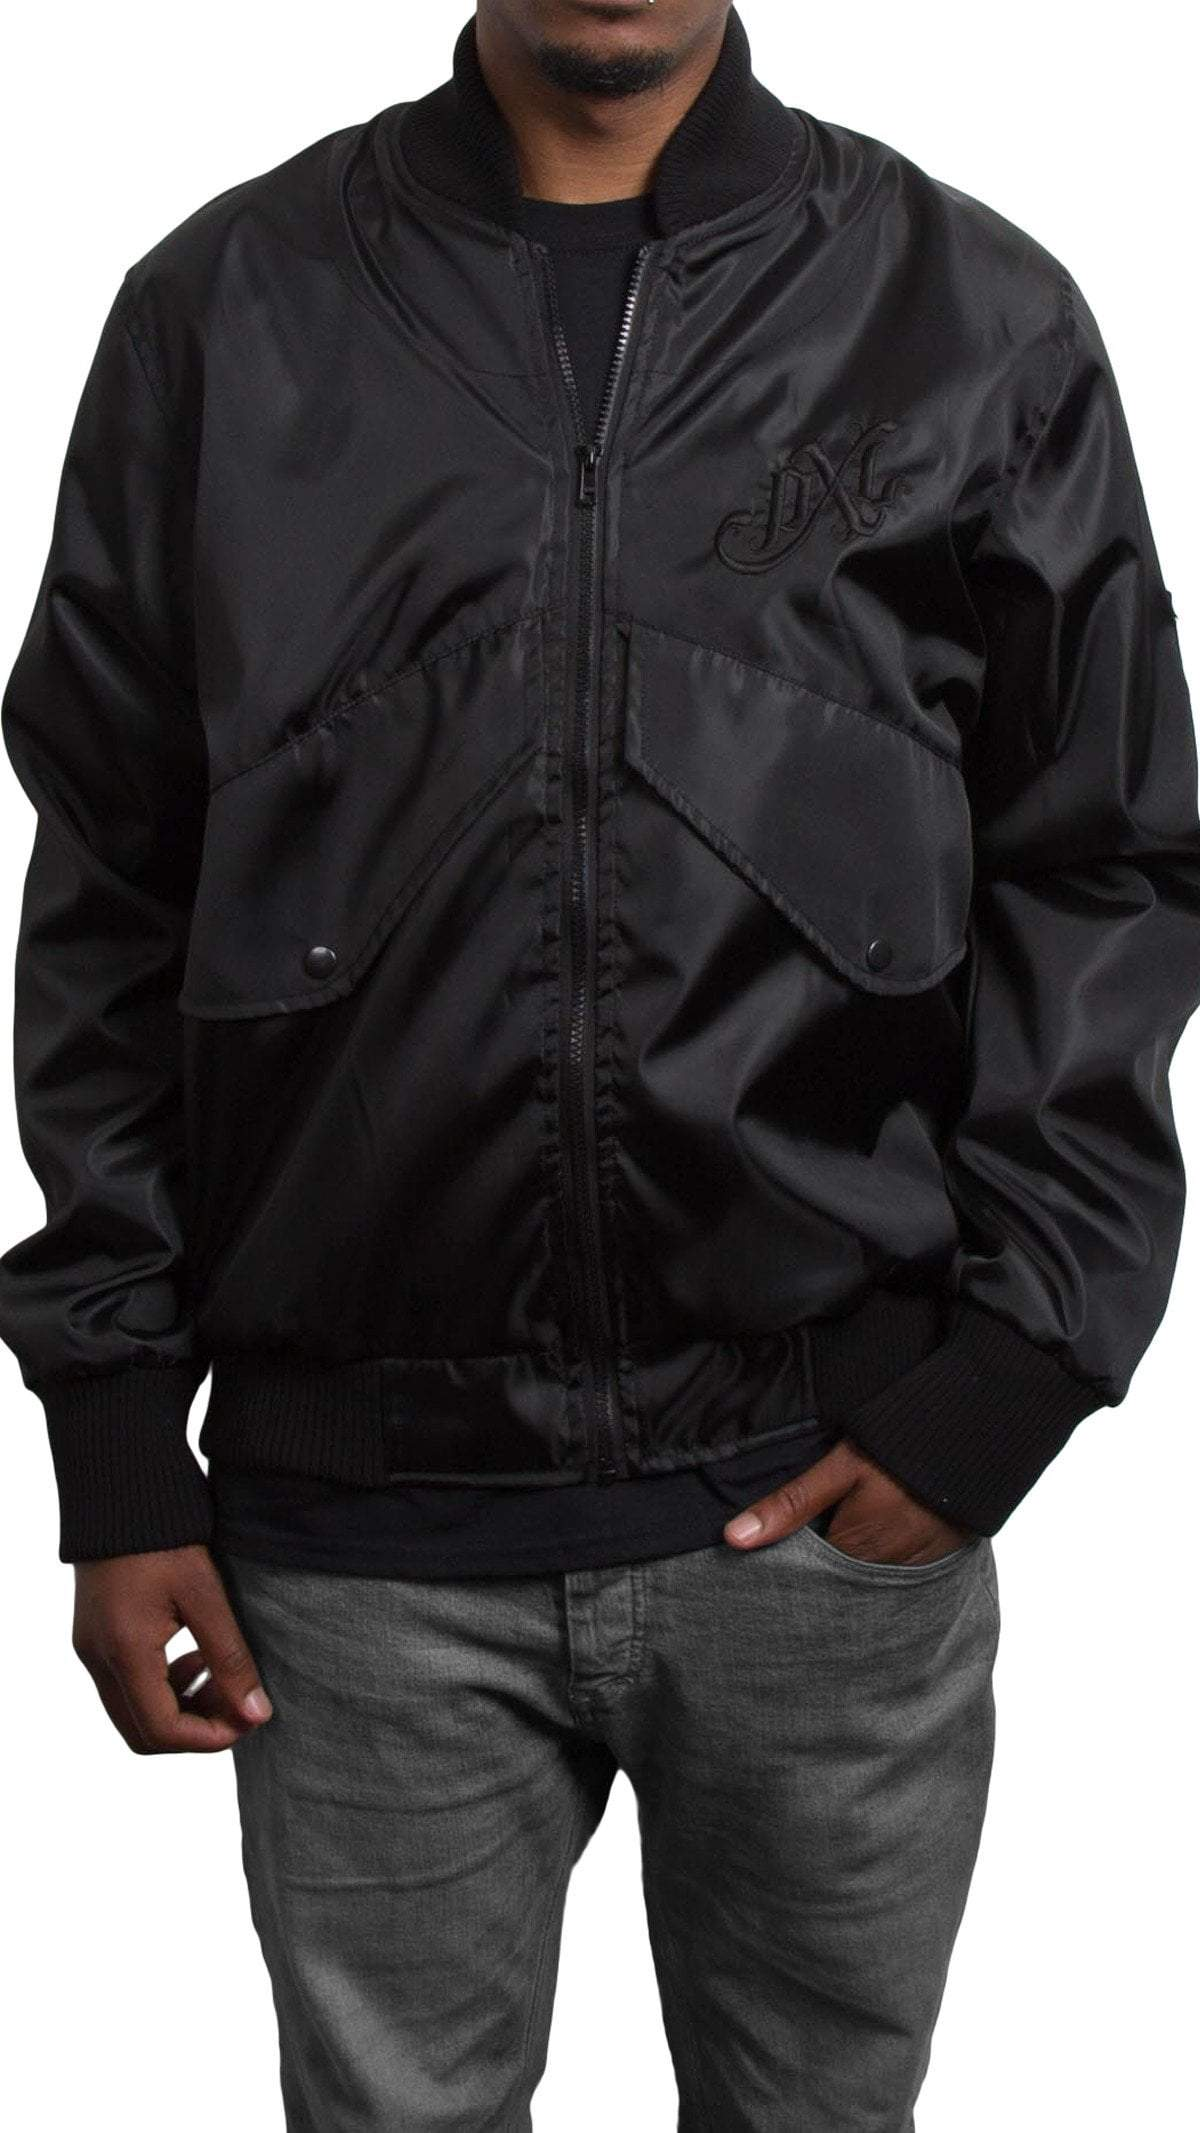 pxlclothing.com Jacket Select Size BOMBER - JACKET